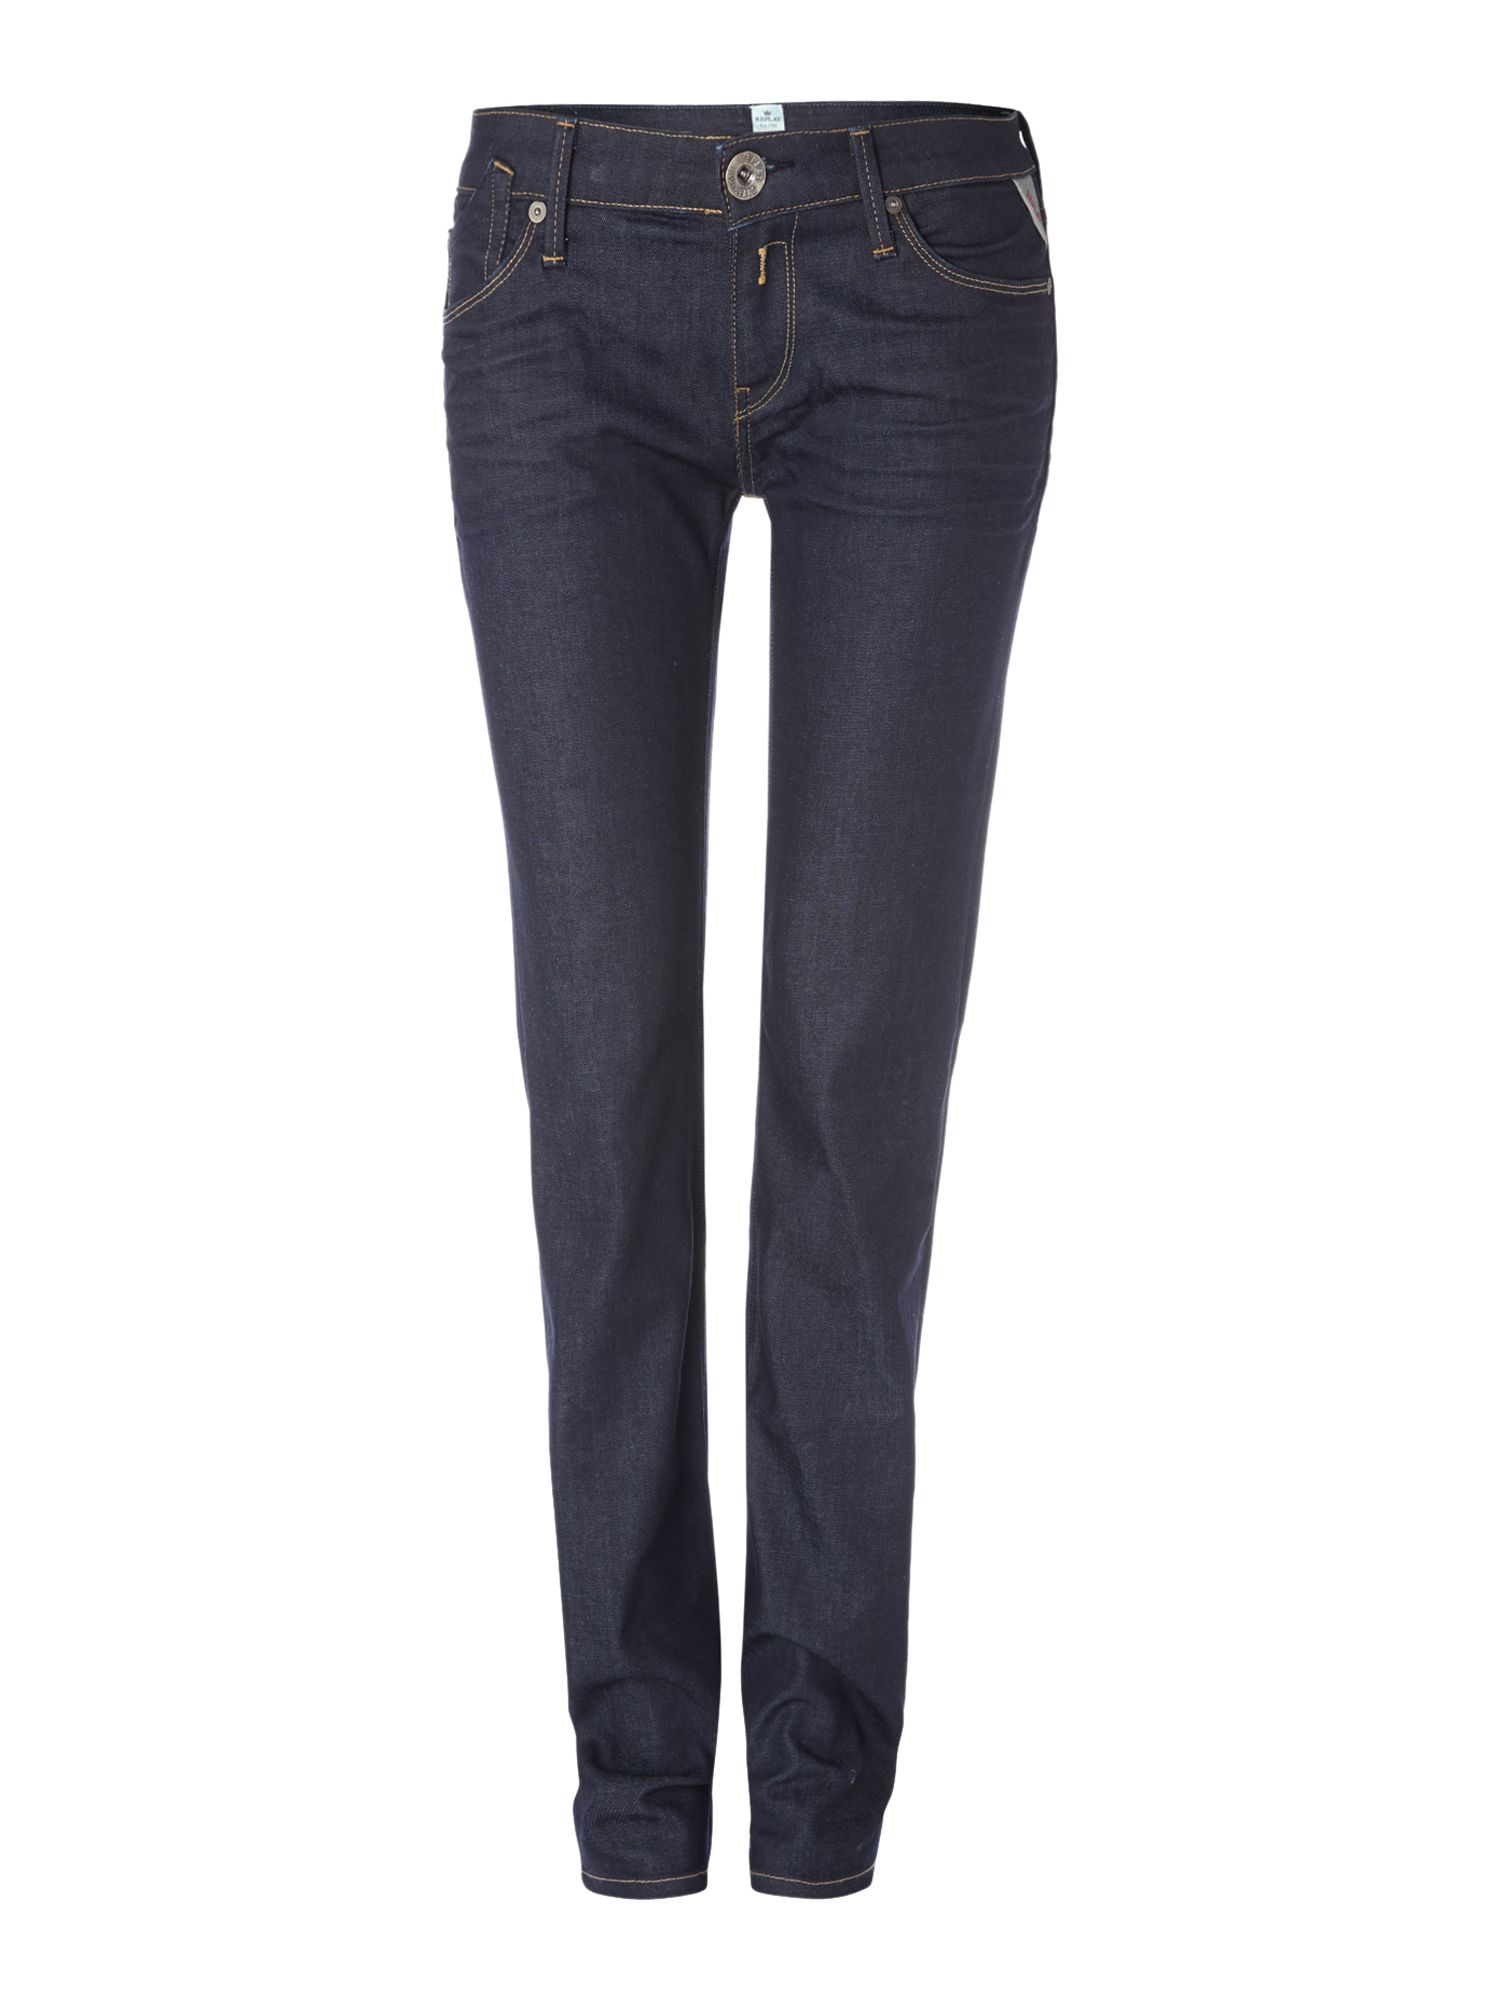 Rockxanne slim fit jean